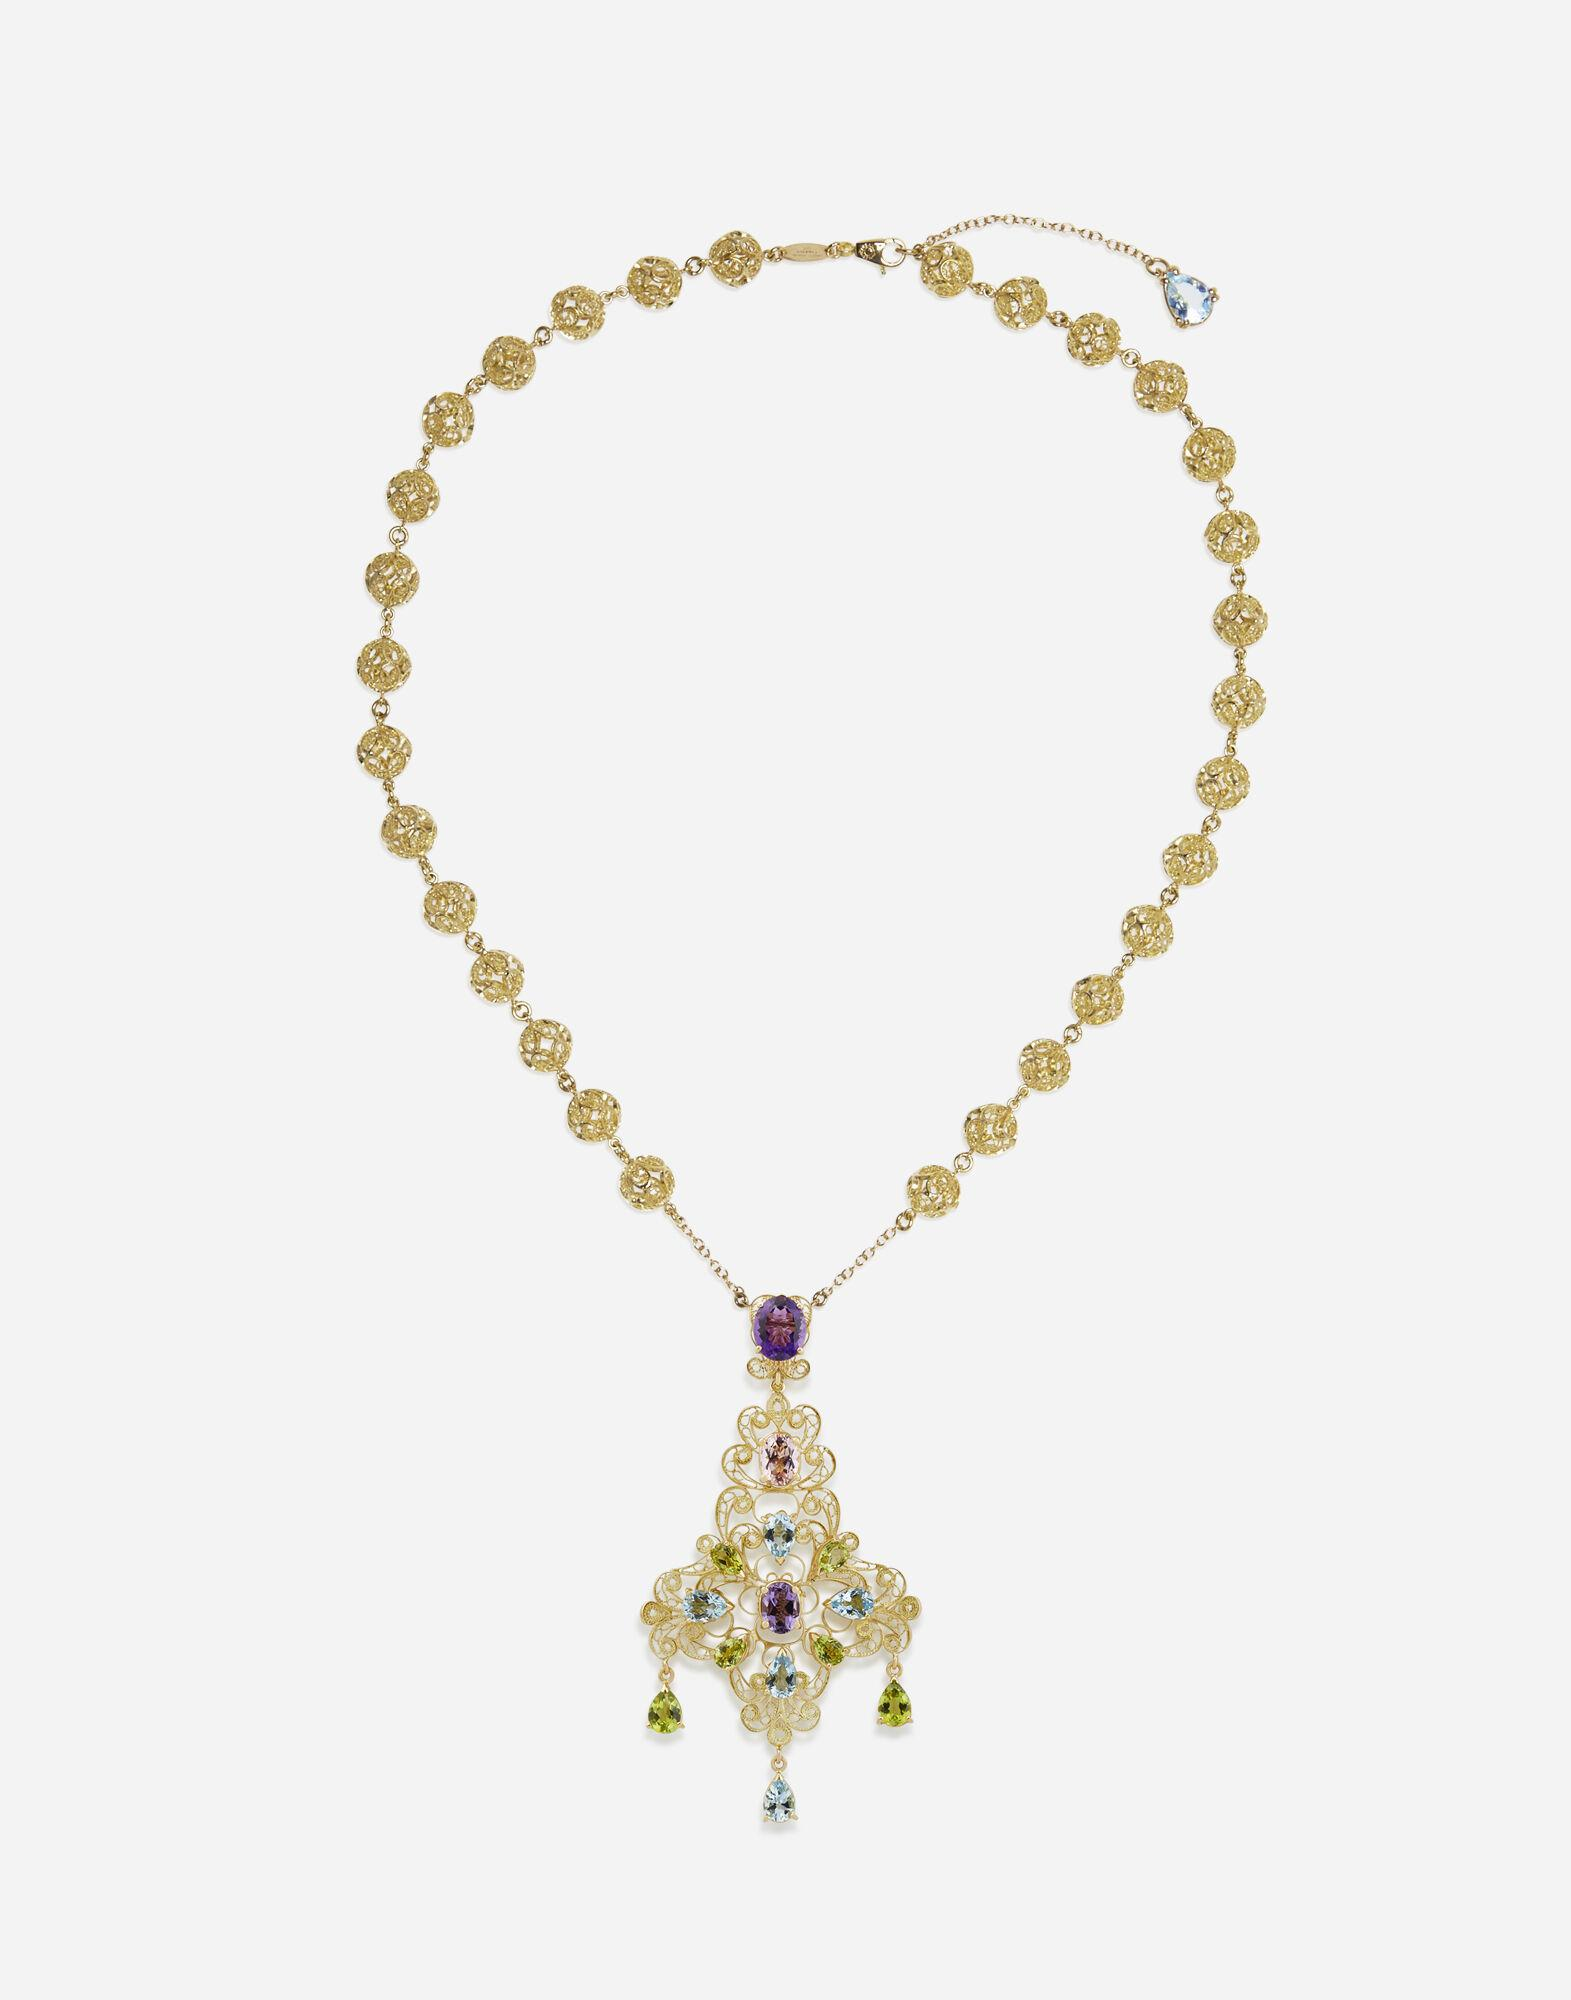 Pizzo necklace in yellow gold filigree with amethysts, aquamarines, peridots and morganite